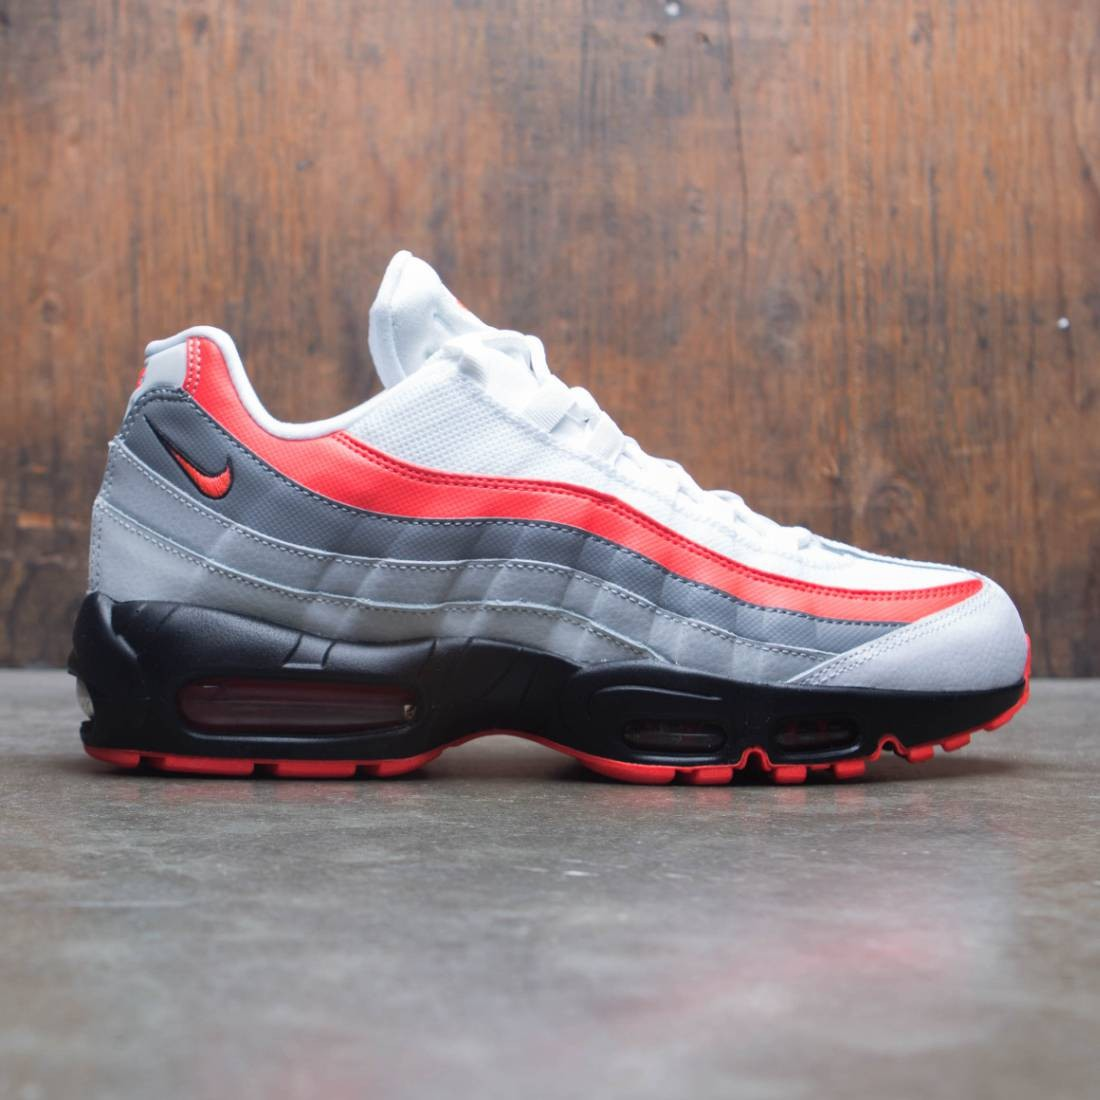 9679637576 nike men air max 95 essential white bright crimson black pure platinum